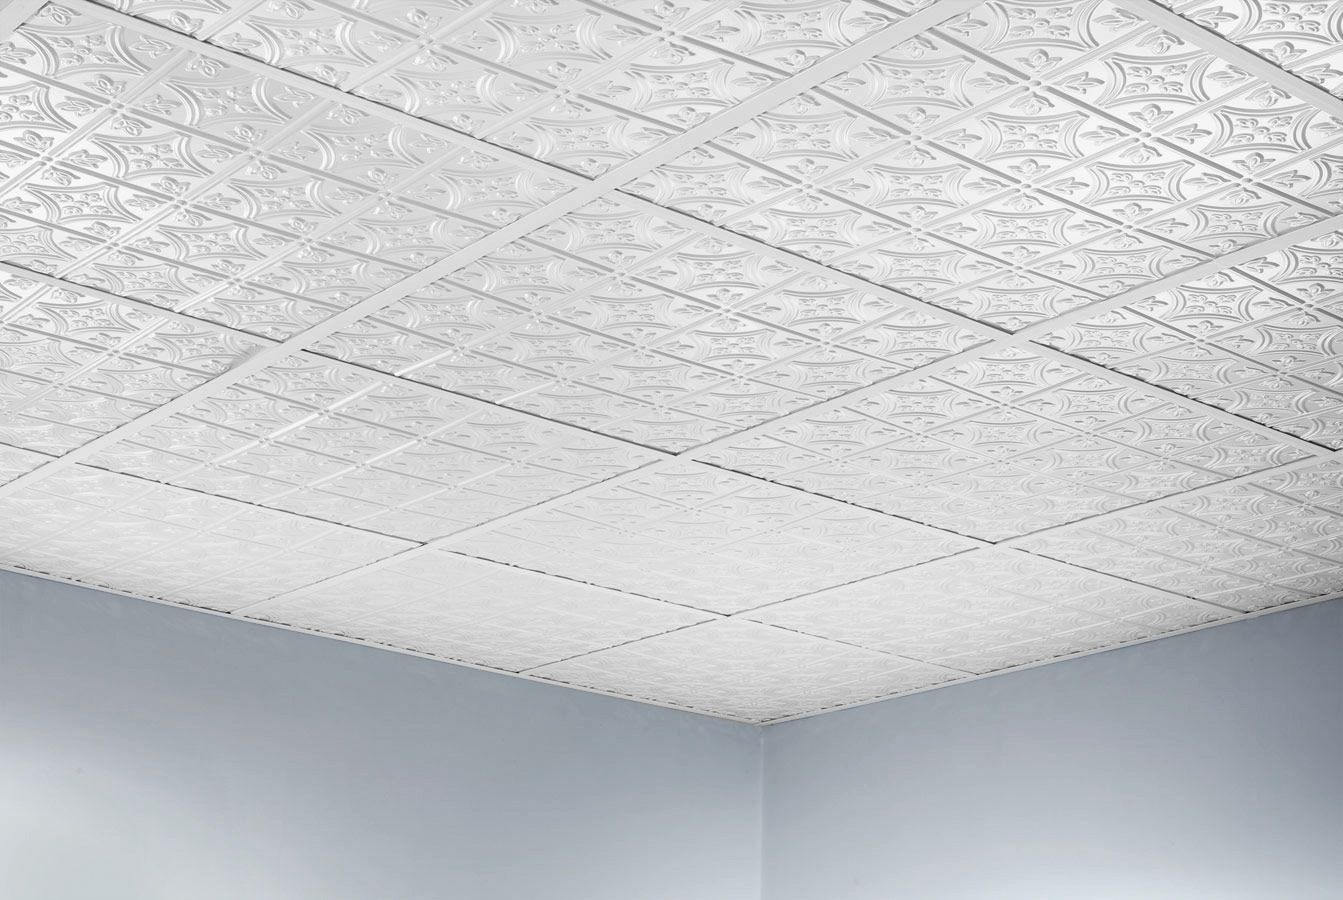 armstrong acoustic capitol ceiling tile black tiles city purchase by ceilings lumber product